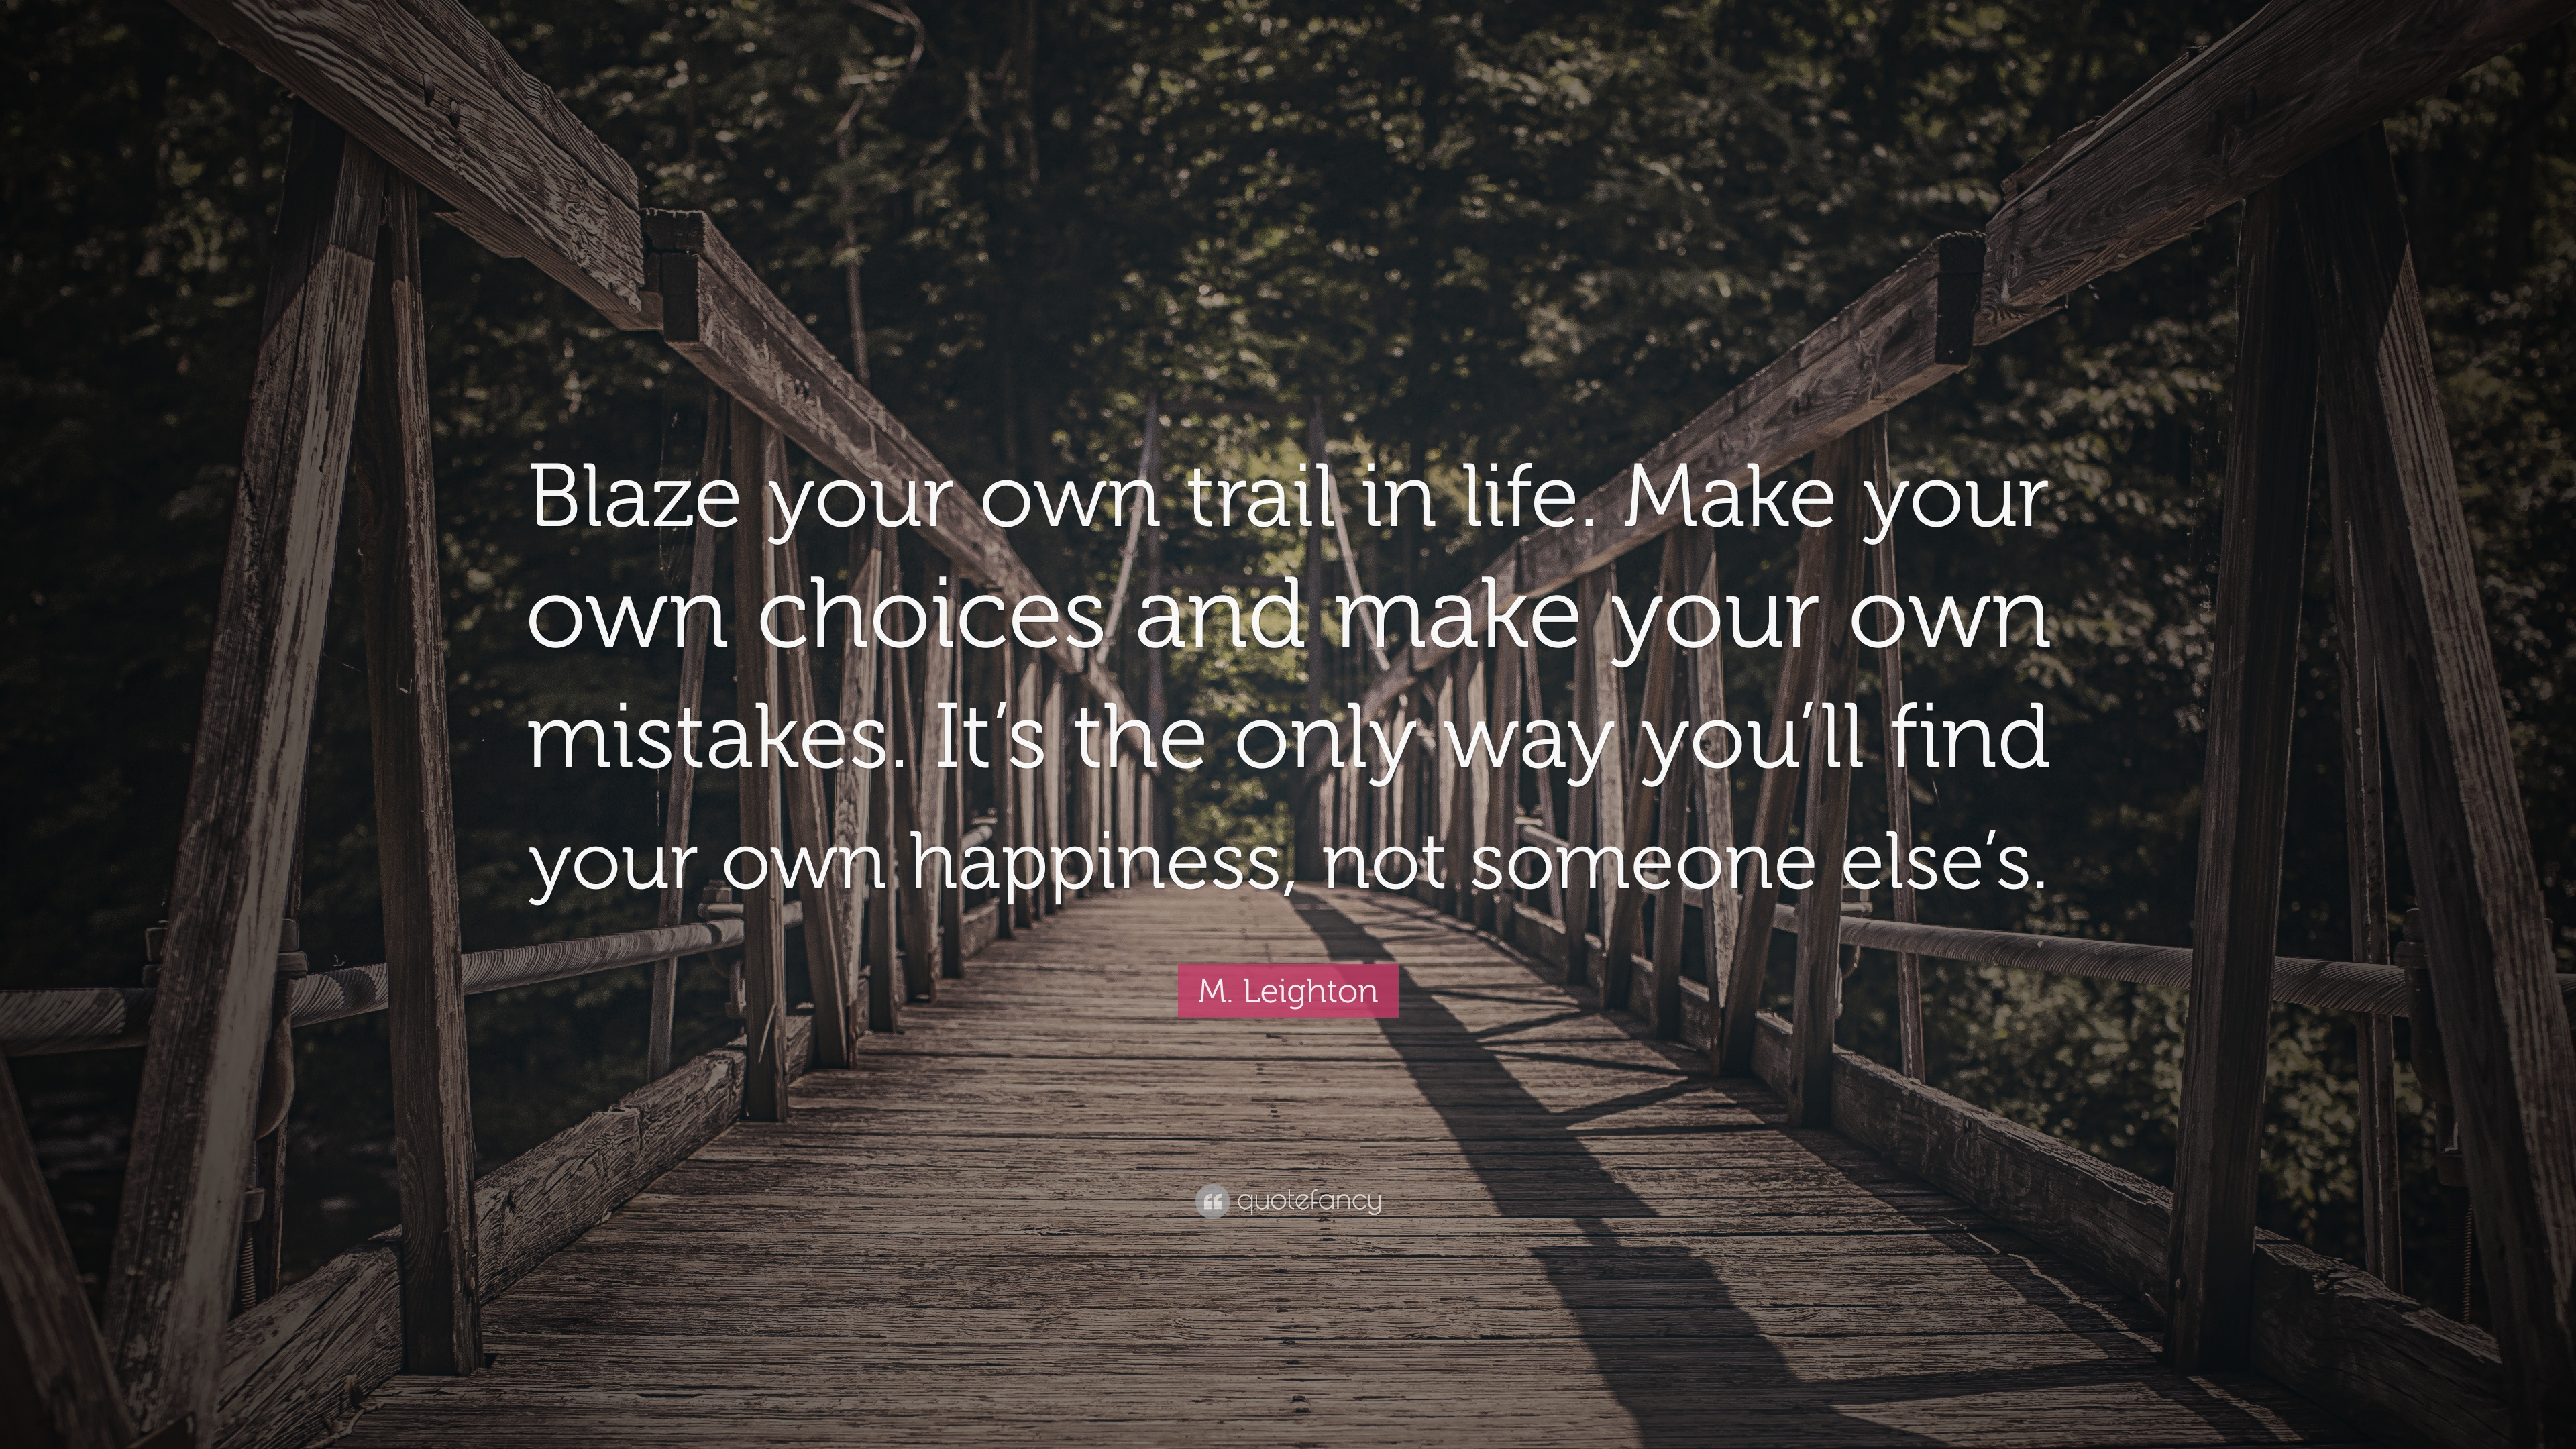 M Leighton Quote Blaze Your Own Trail In Life Make Your